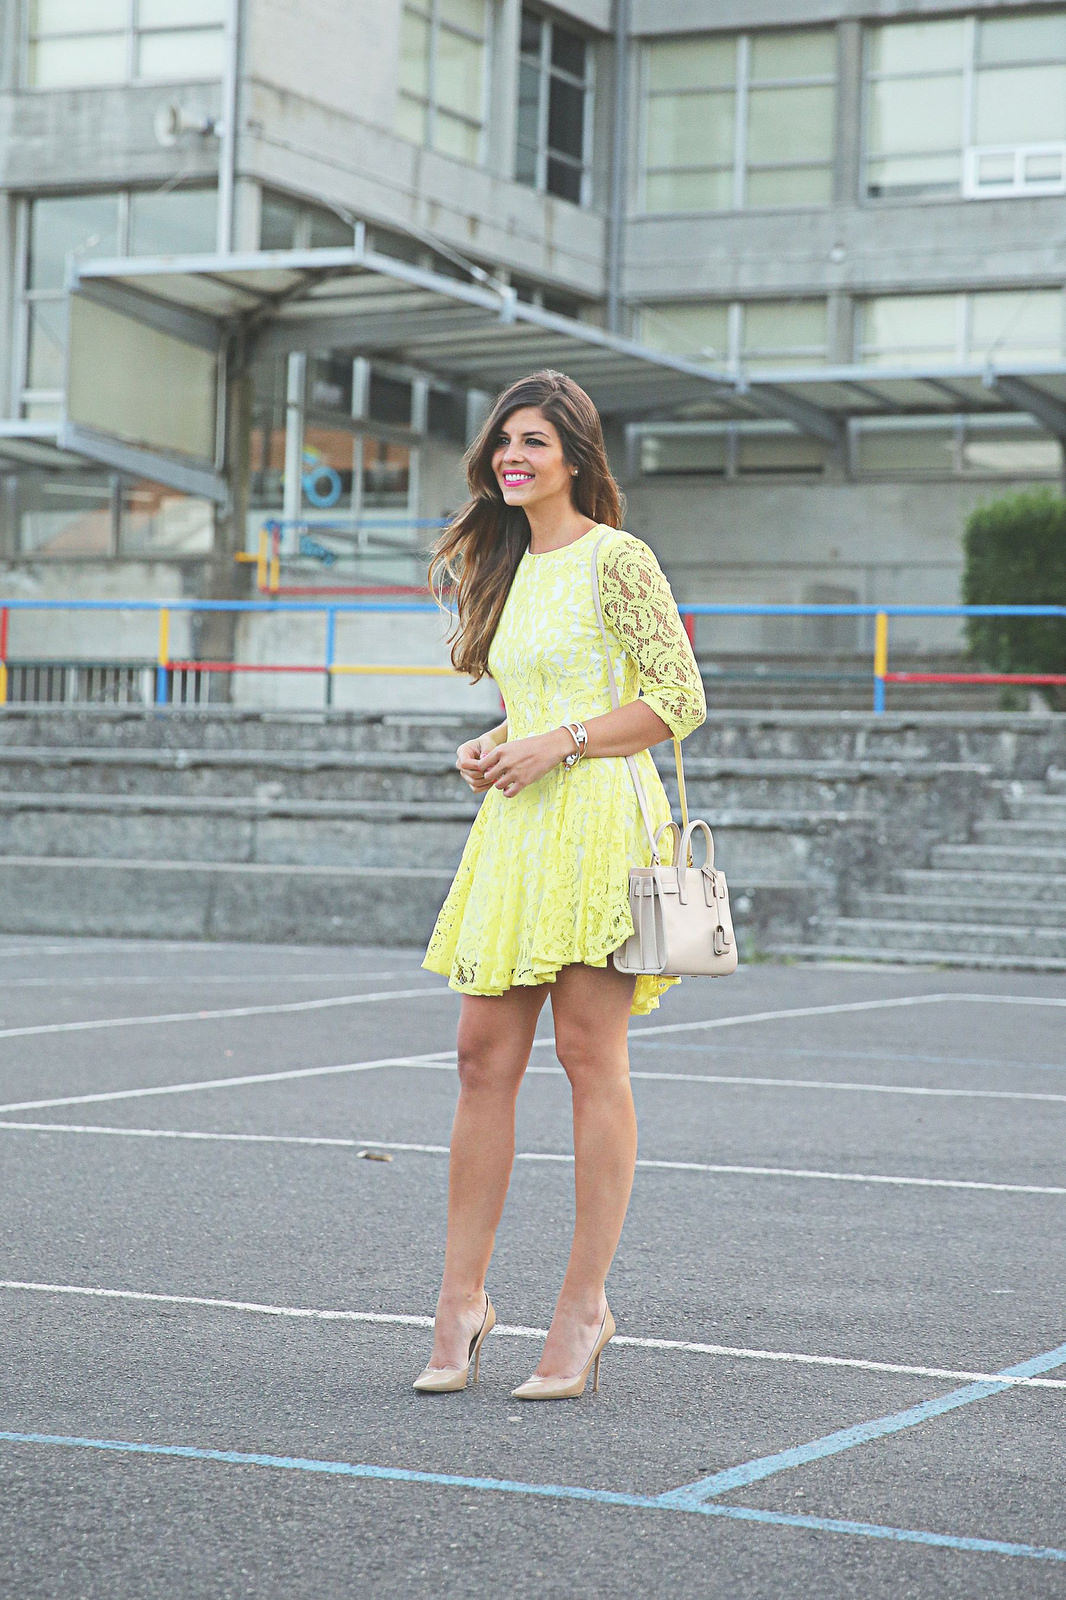 Natalia Cabezas shows how you can wear a yellow lace dress with beige shoes and bag Dress: Cosette, Bag: Saint Laurent Shoes: Jimmy Choo